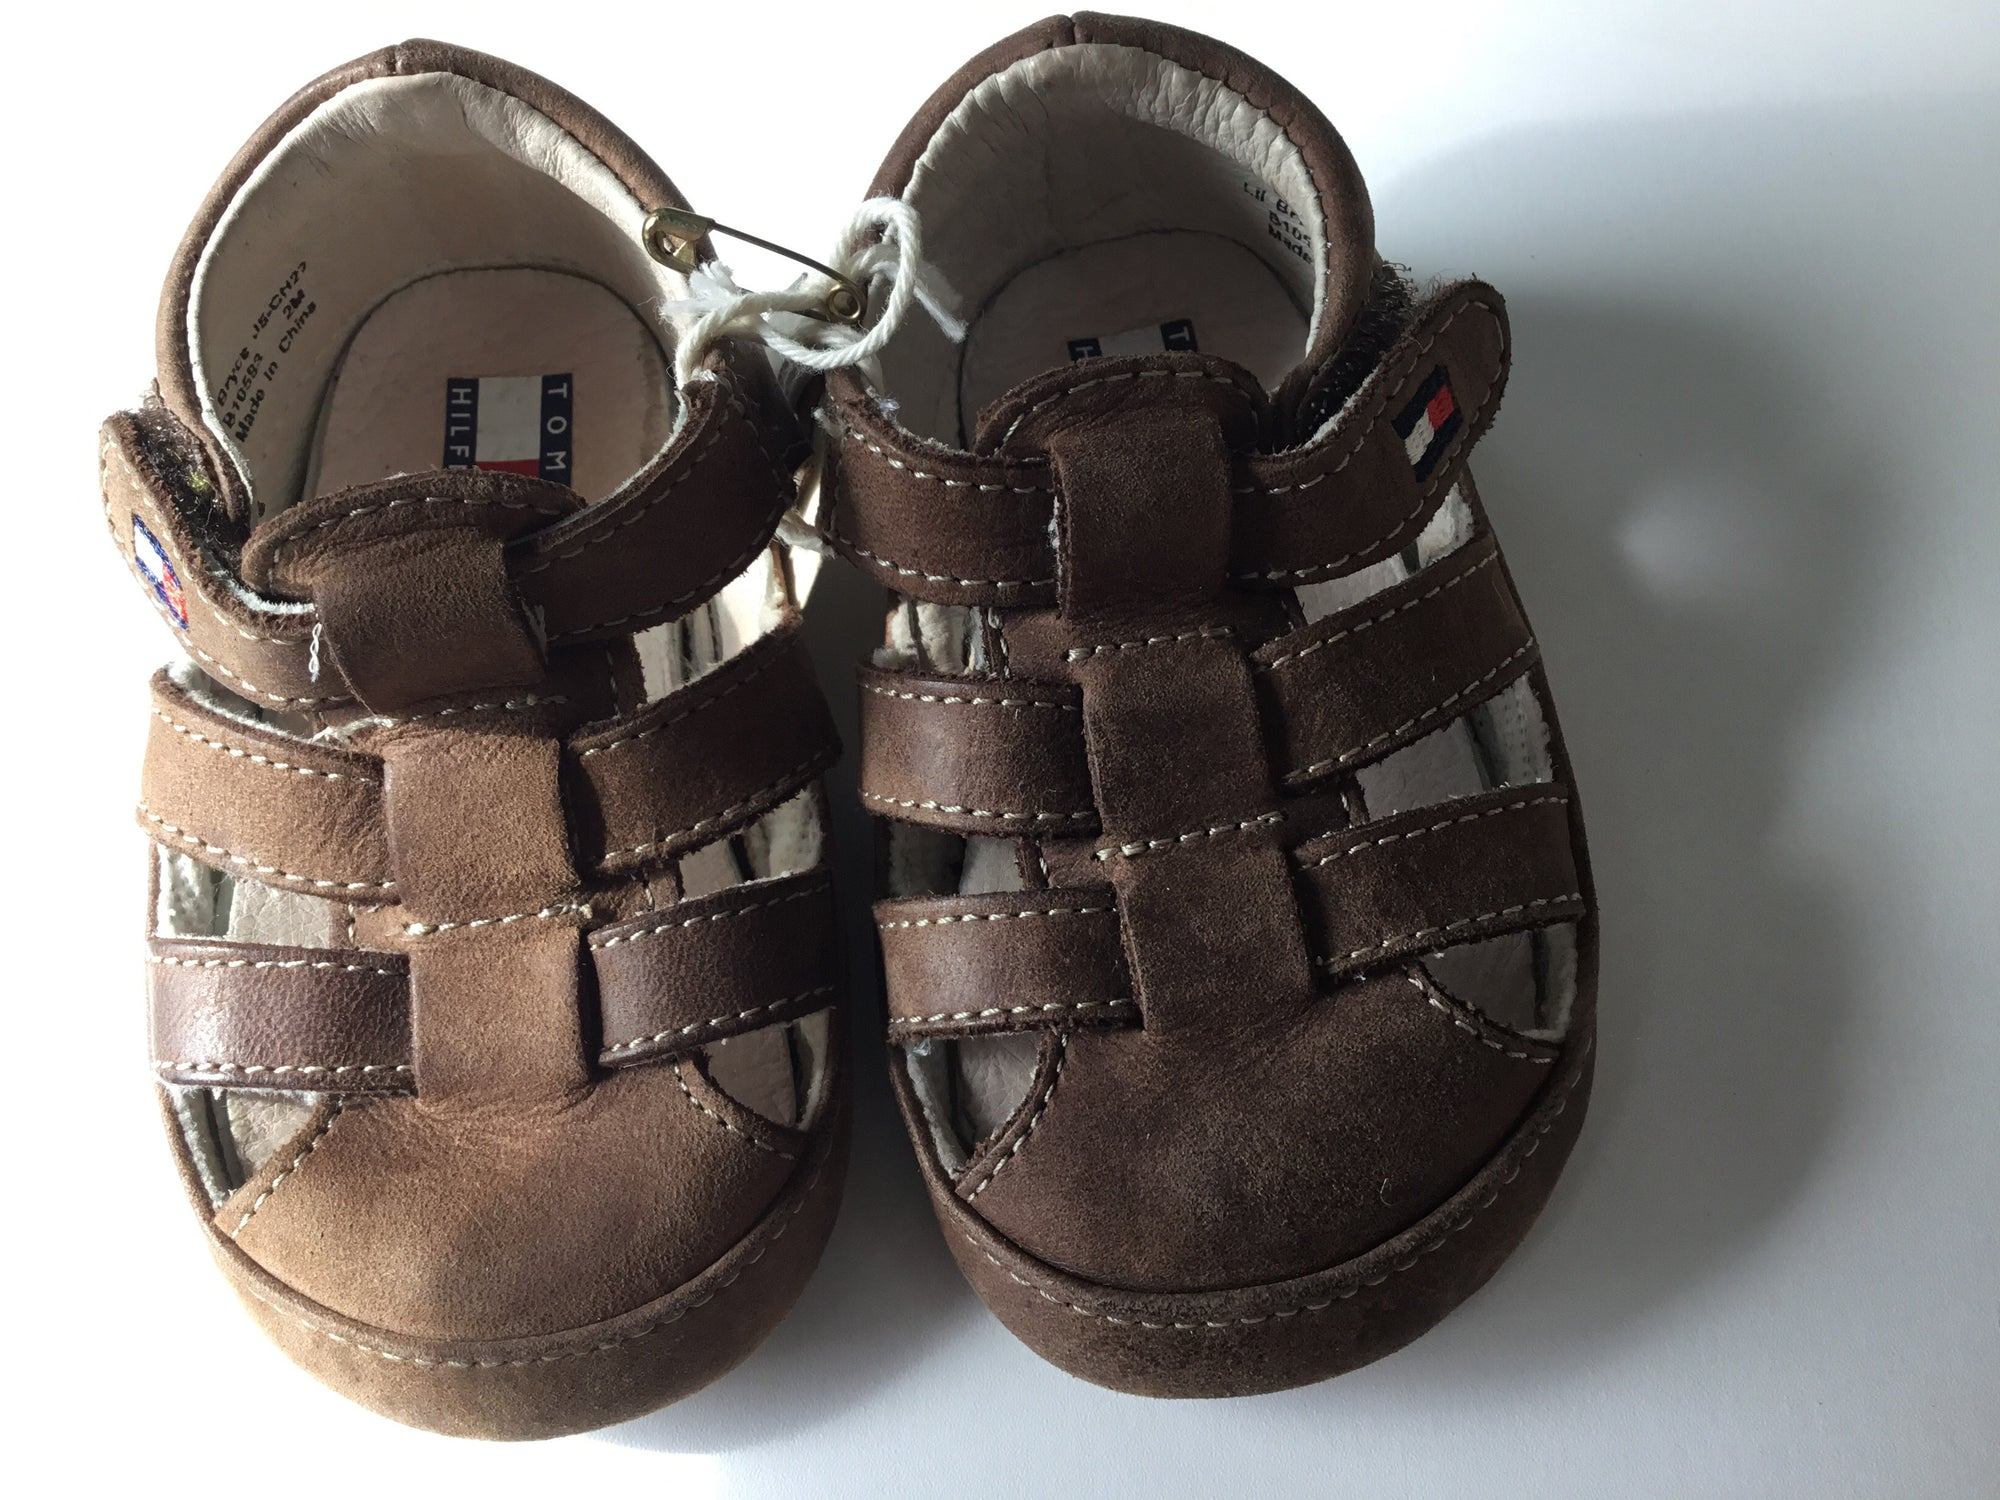 C2 Tommy Hilfiger Tan Sandals